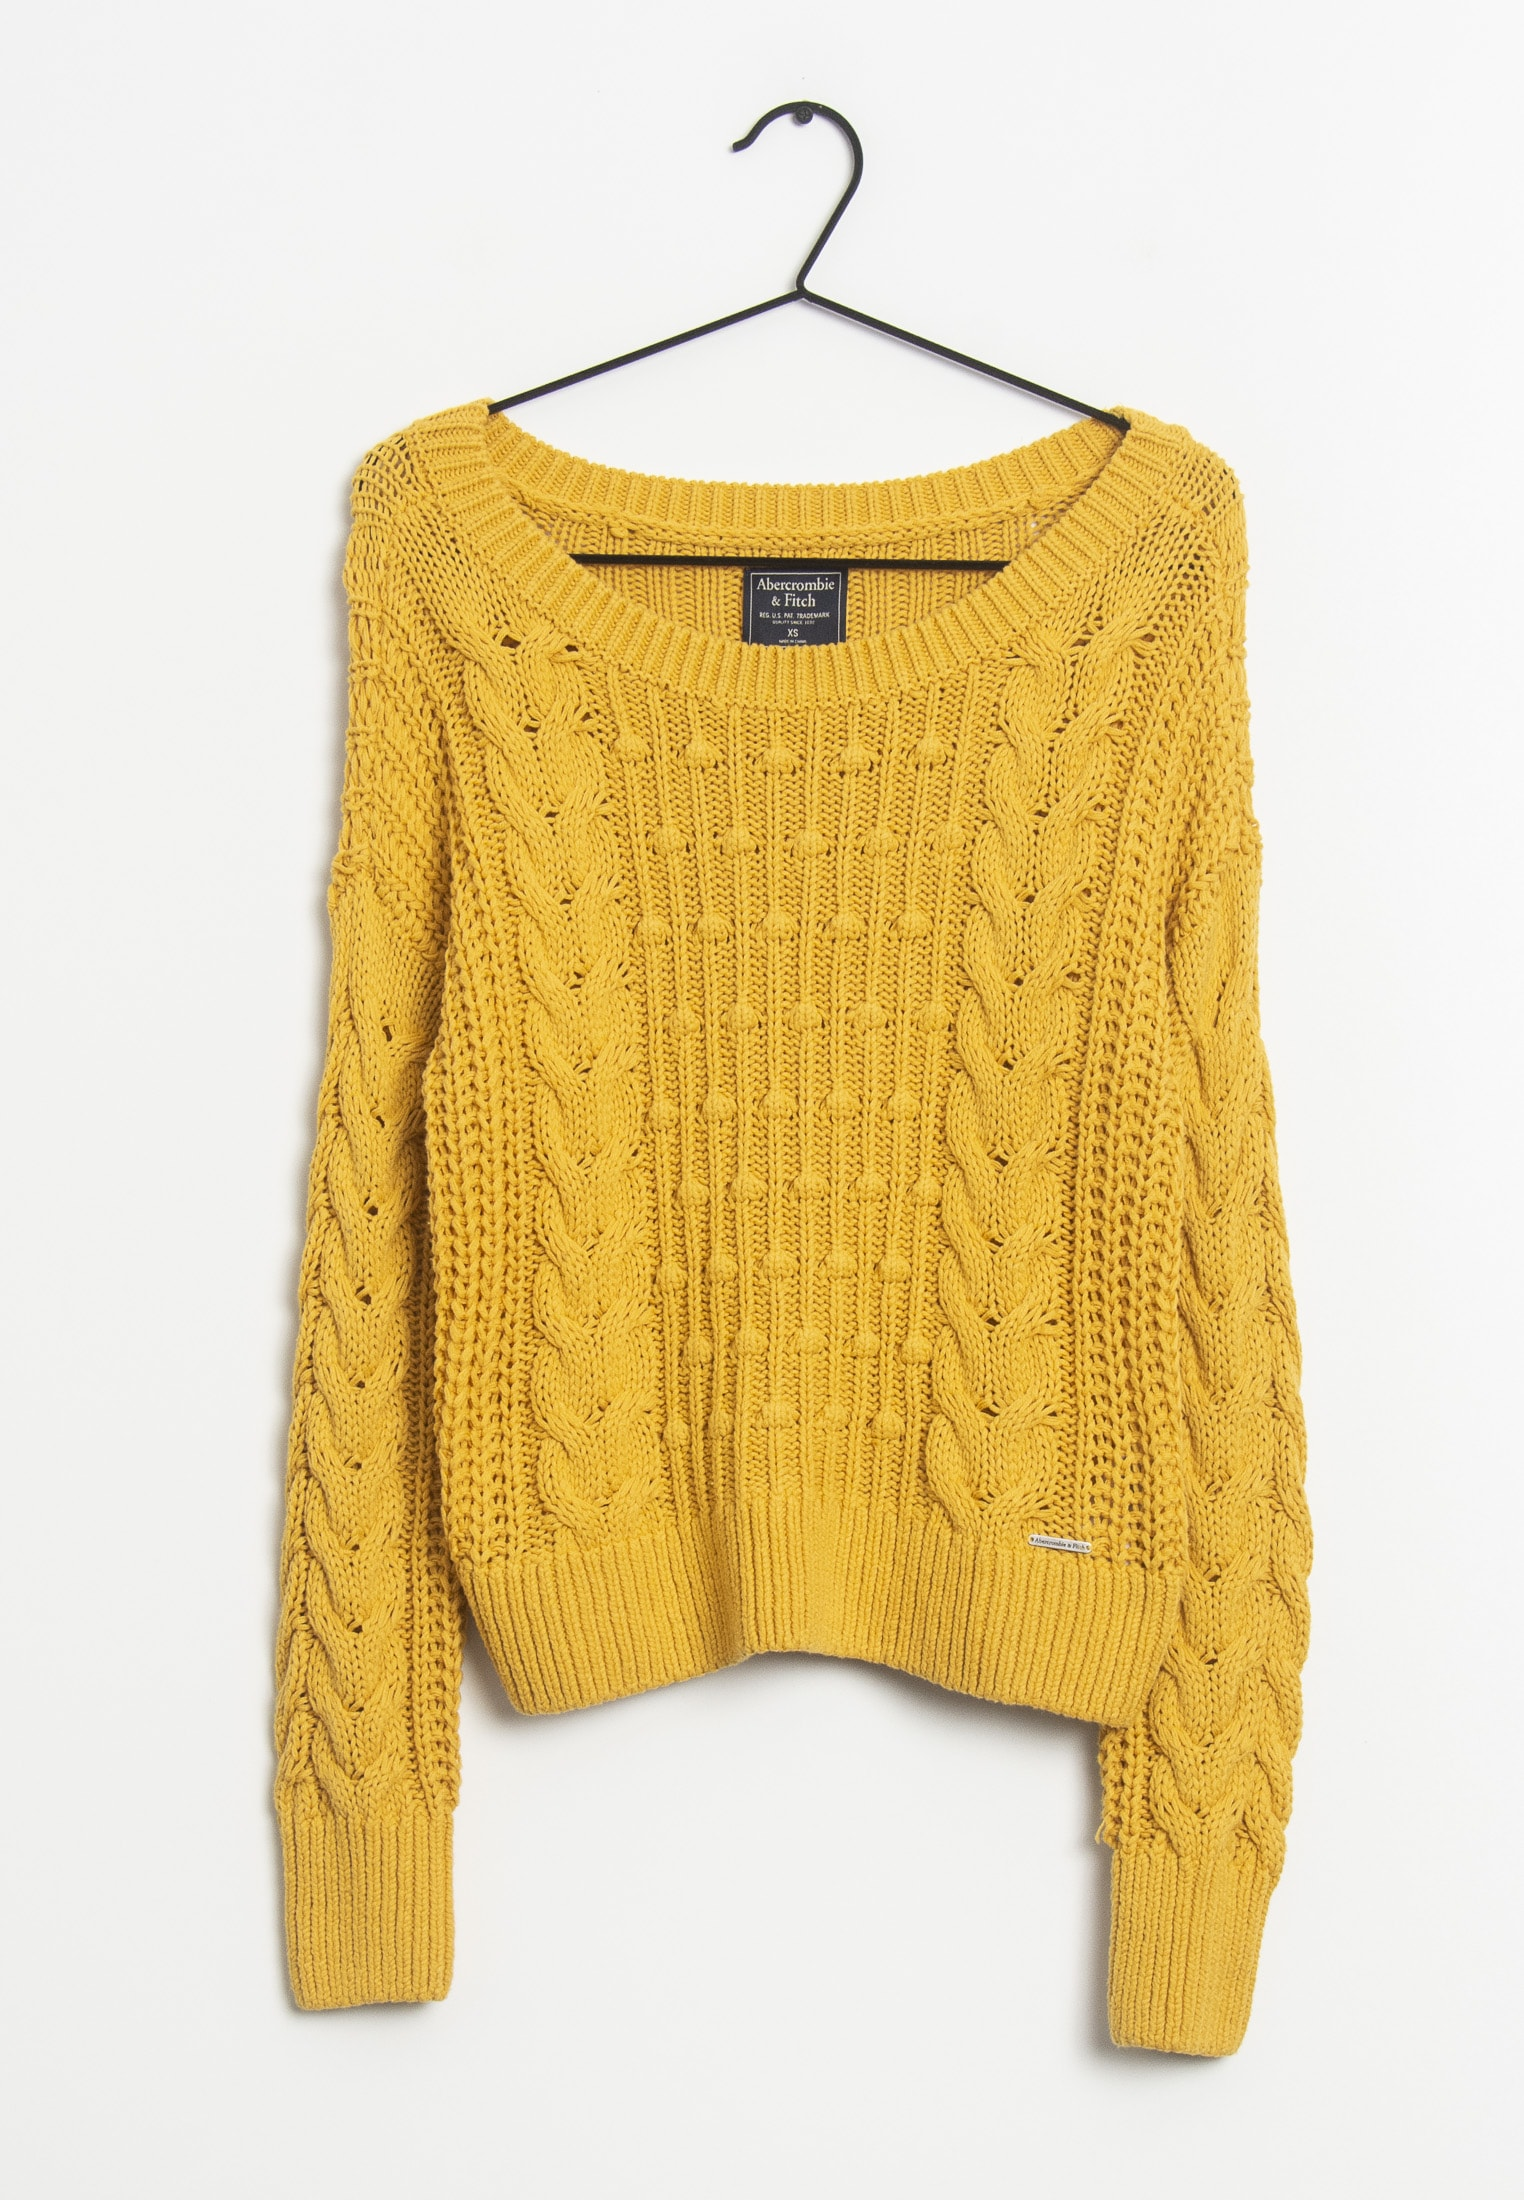 Abercrombie & Fitch Strickpullover Gelb Gr.XS